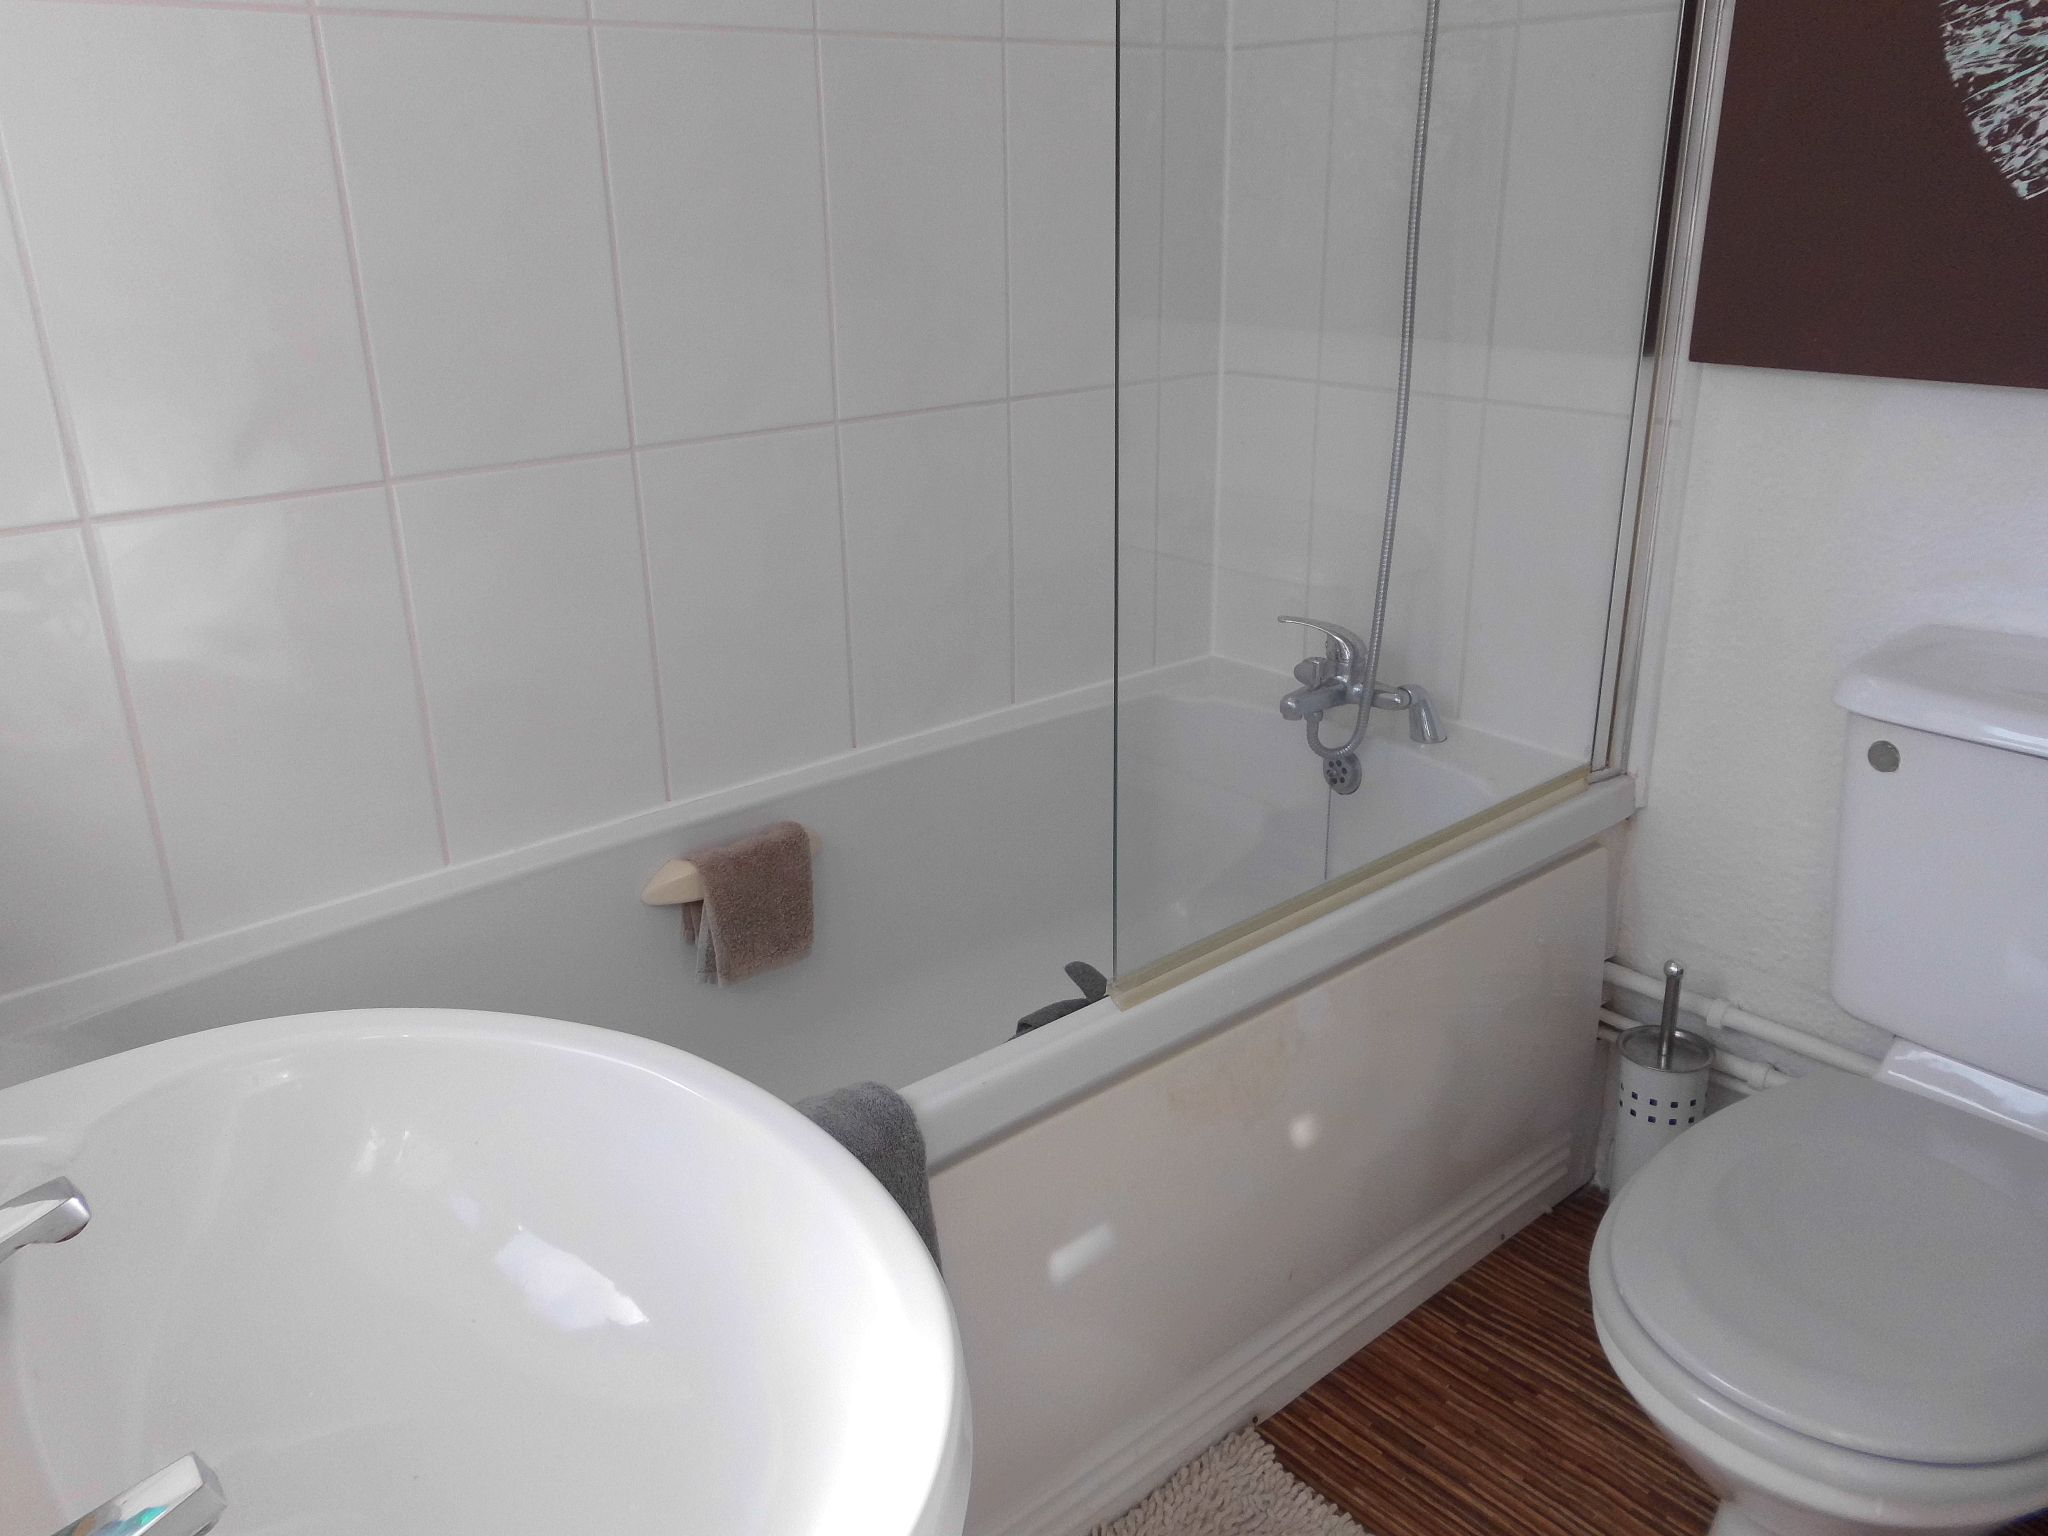 3 bedroom town house SSTC in Leicester - Photograph 6.